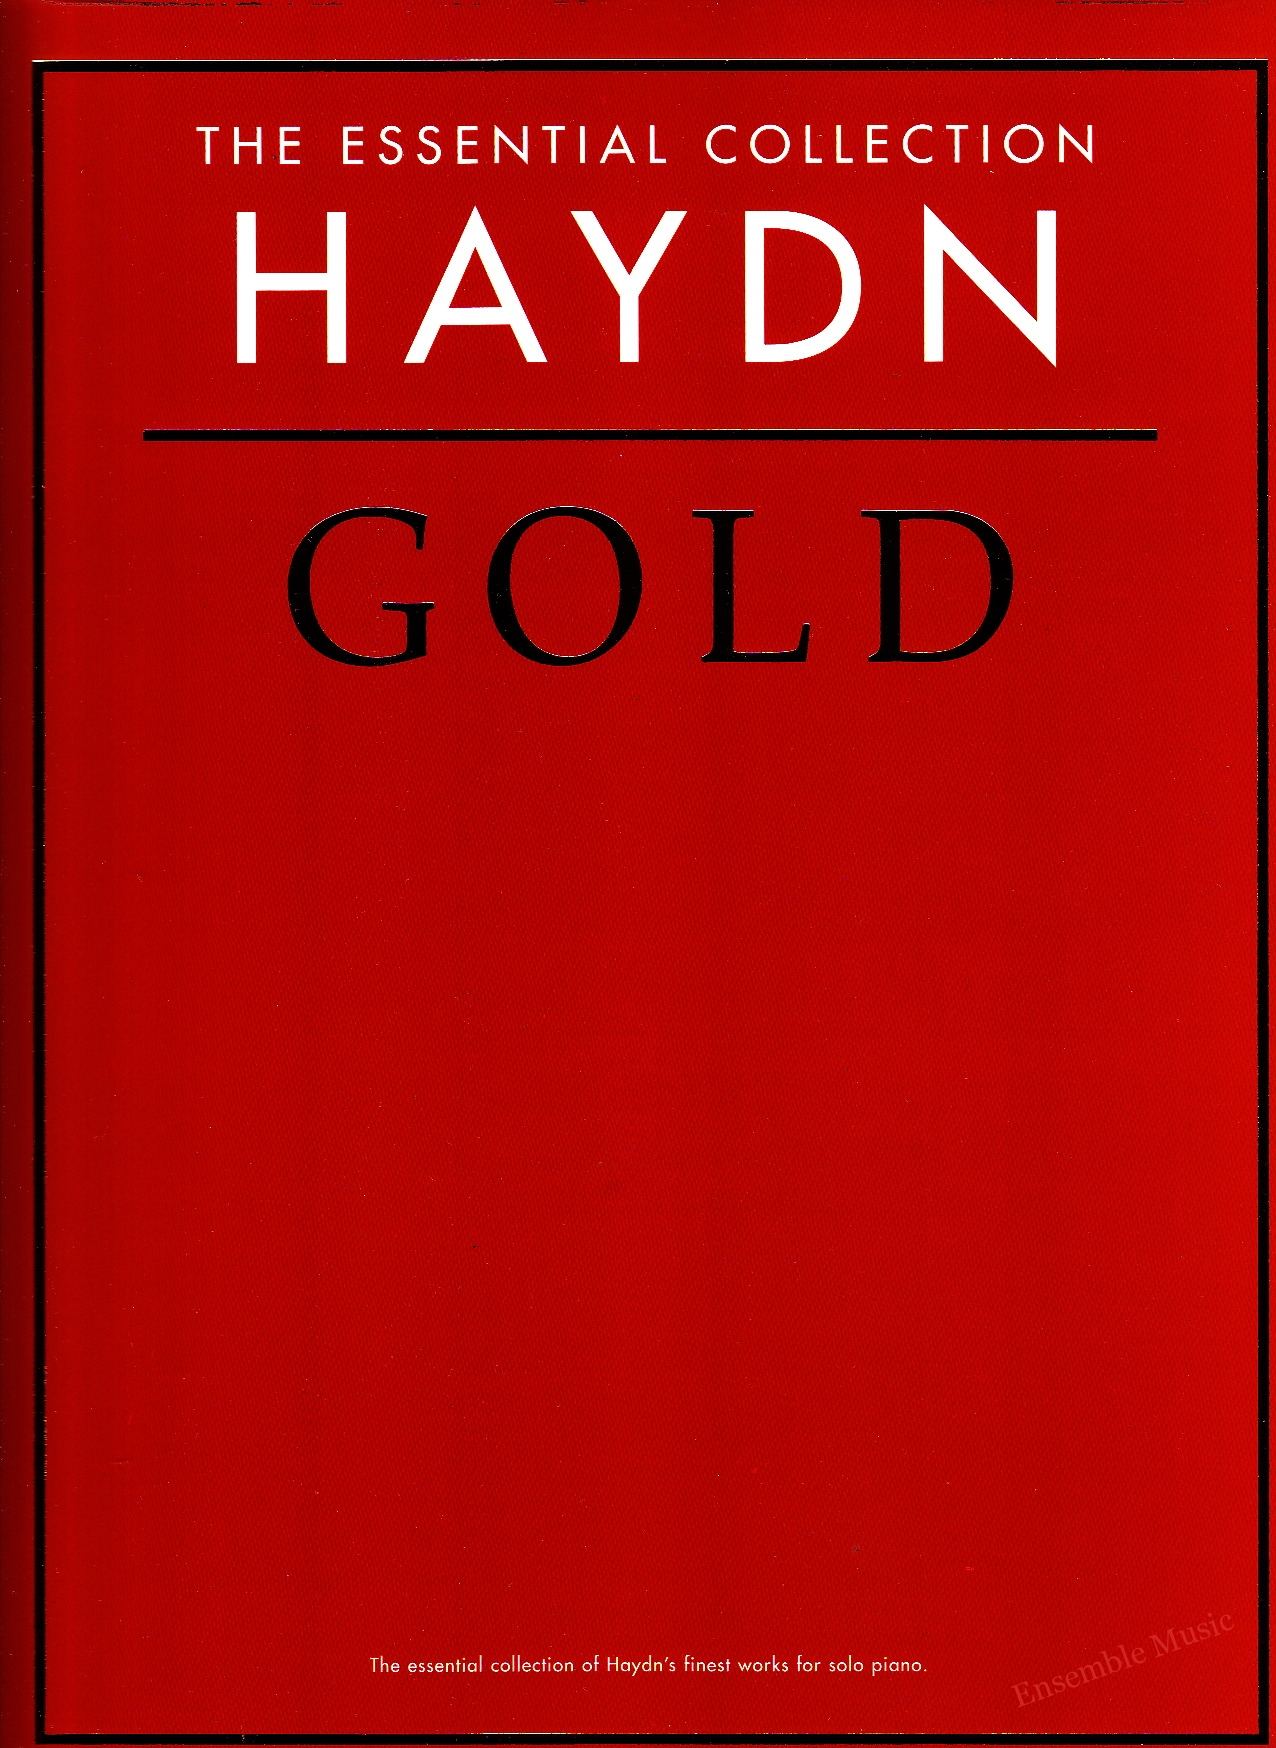 The Essential Collection Haydn Gold